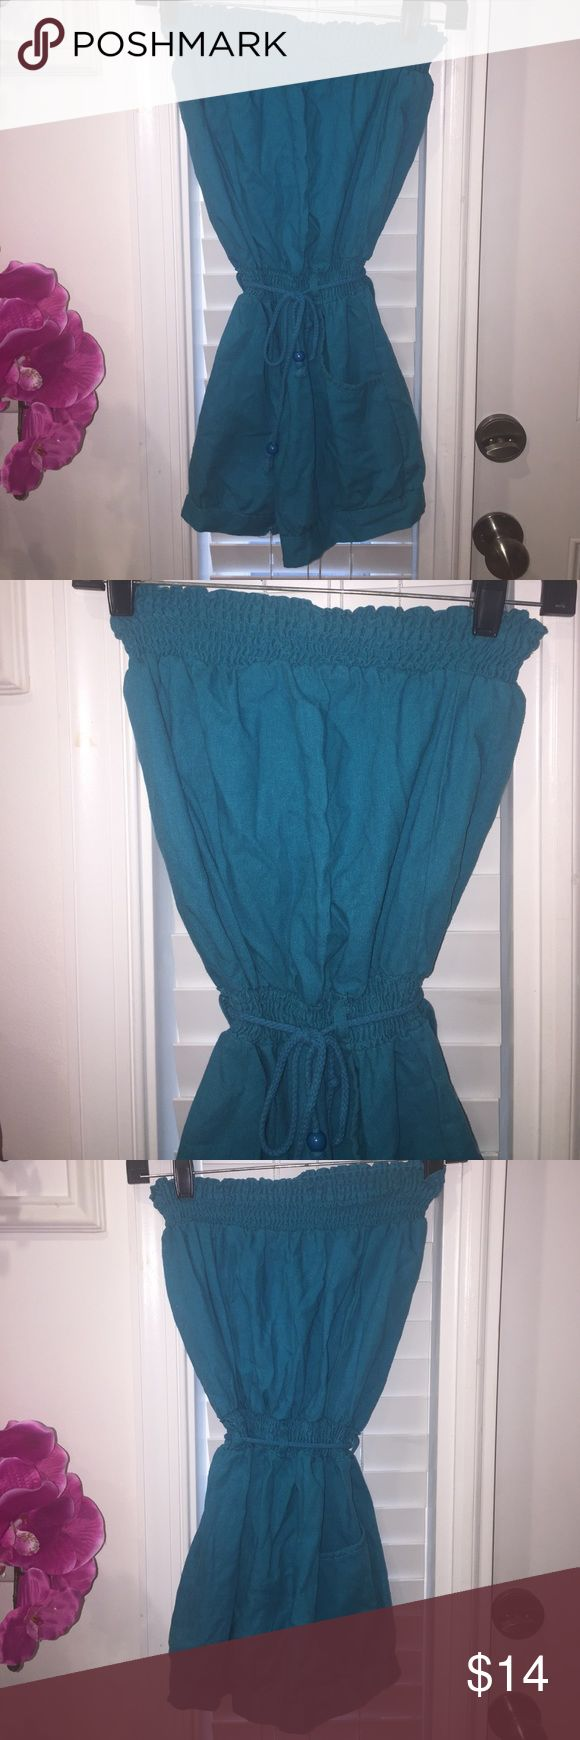 Teal Shorts Strapless Linen Romper, Medium Excellent condition! 👍🏽👍🏽👍🏽 Super Cute for the summer! Save and bundle! 💰 Thanks for stopping by! 💕☺️ Dresses